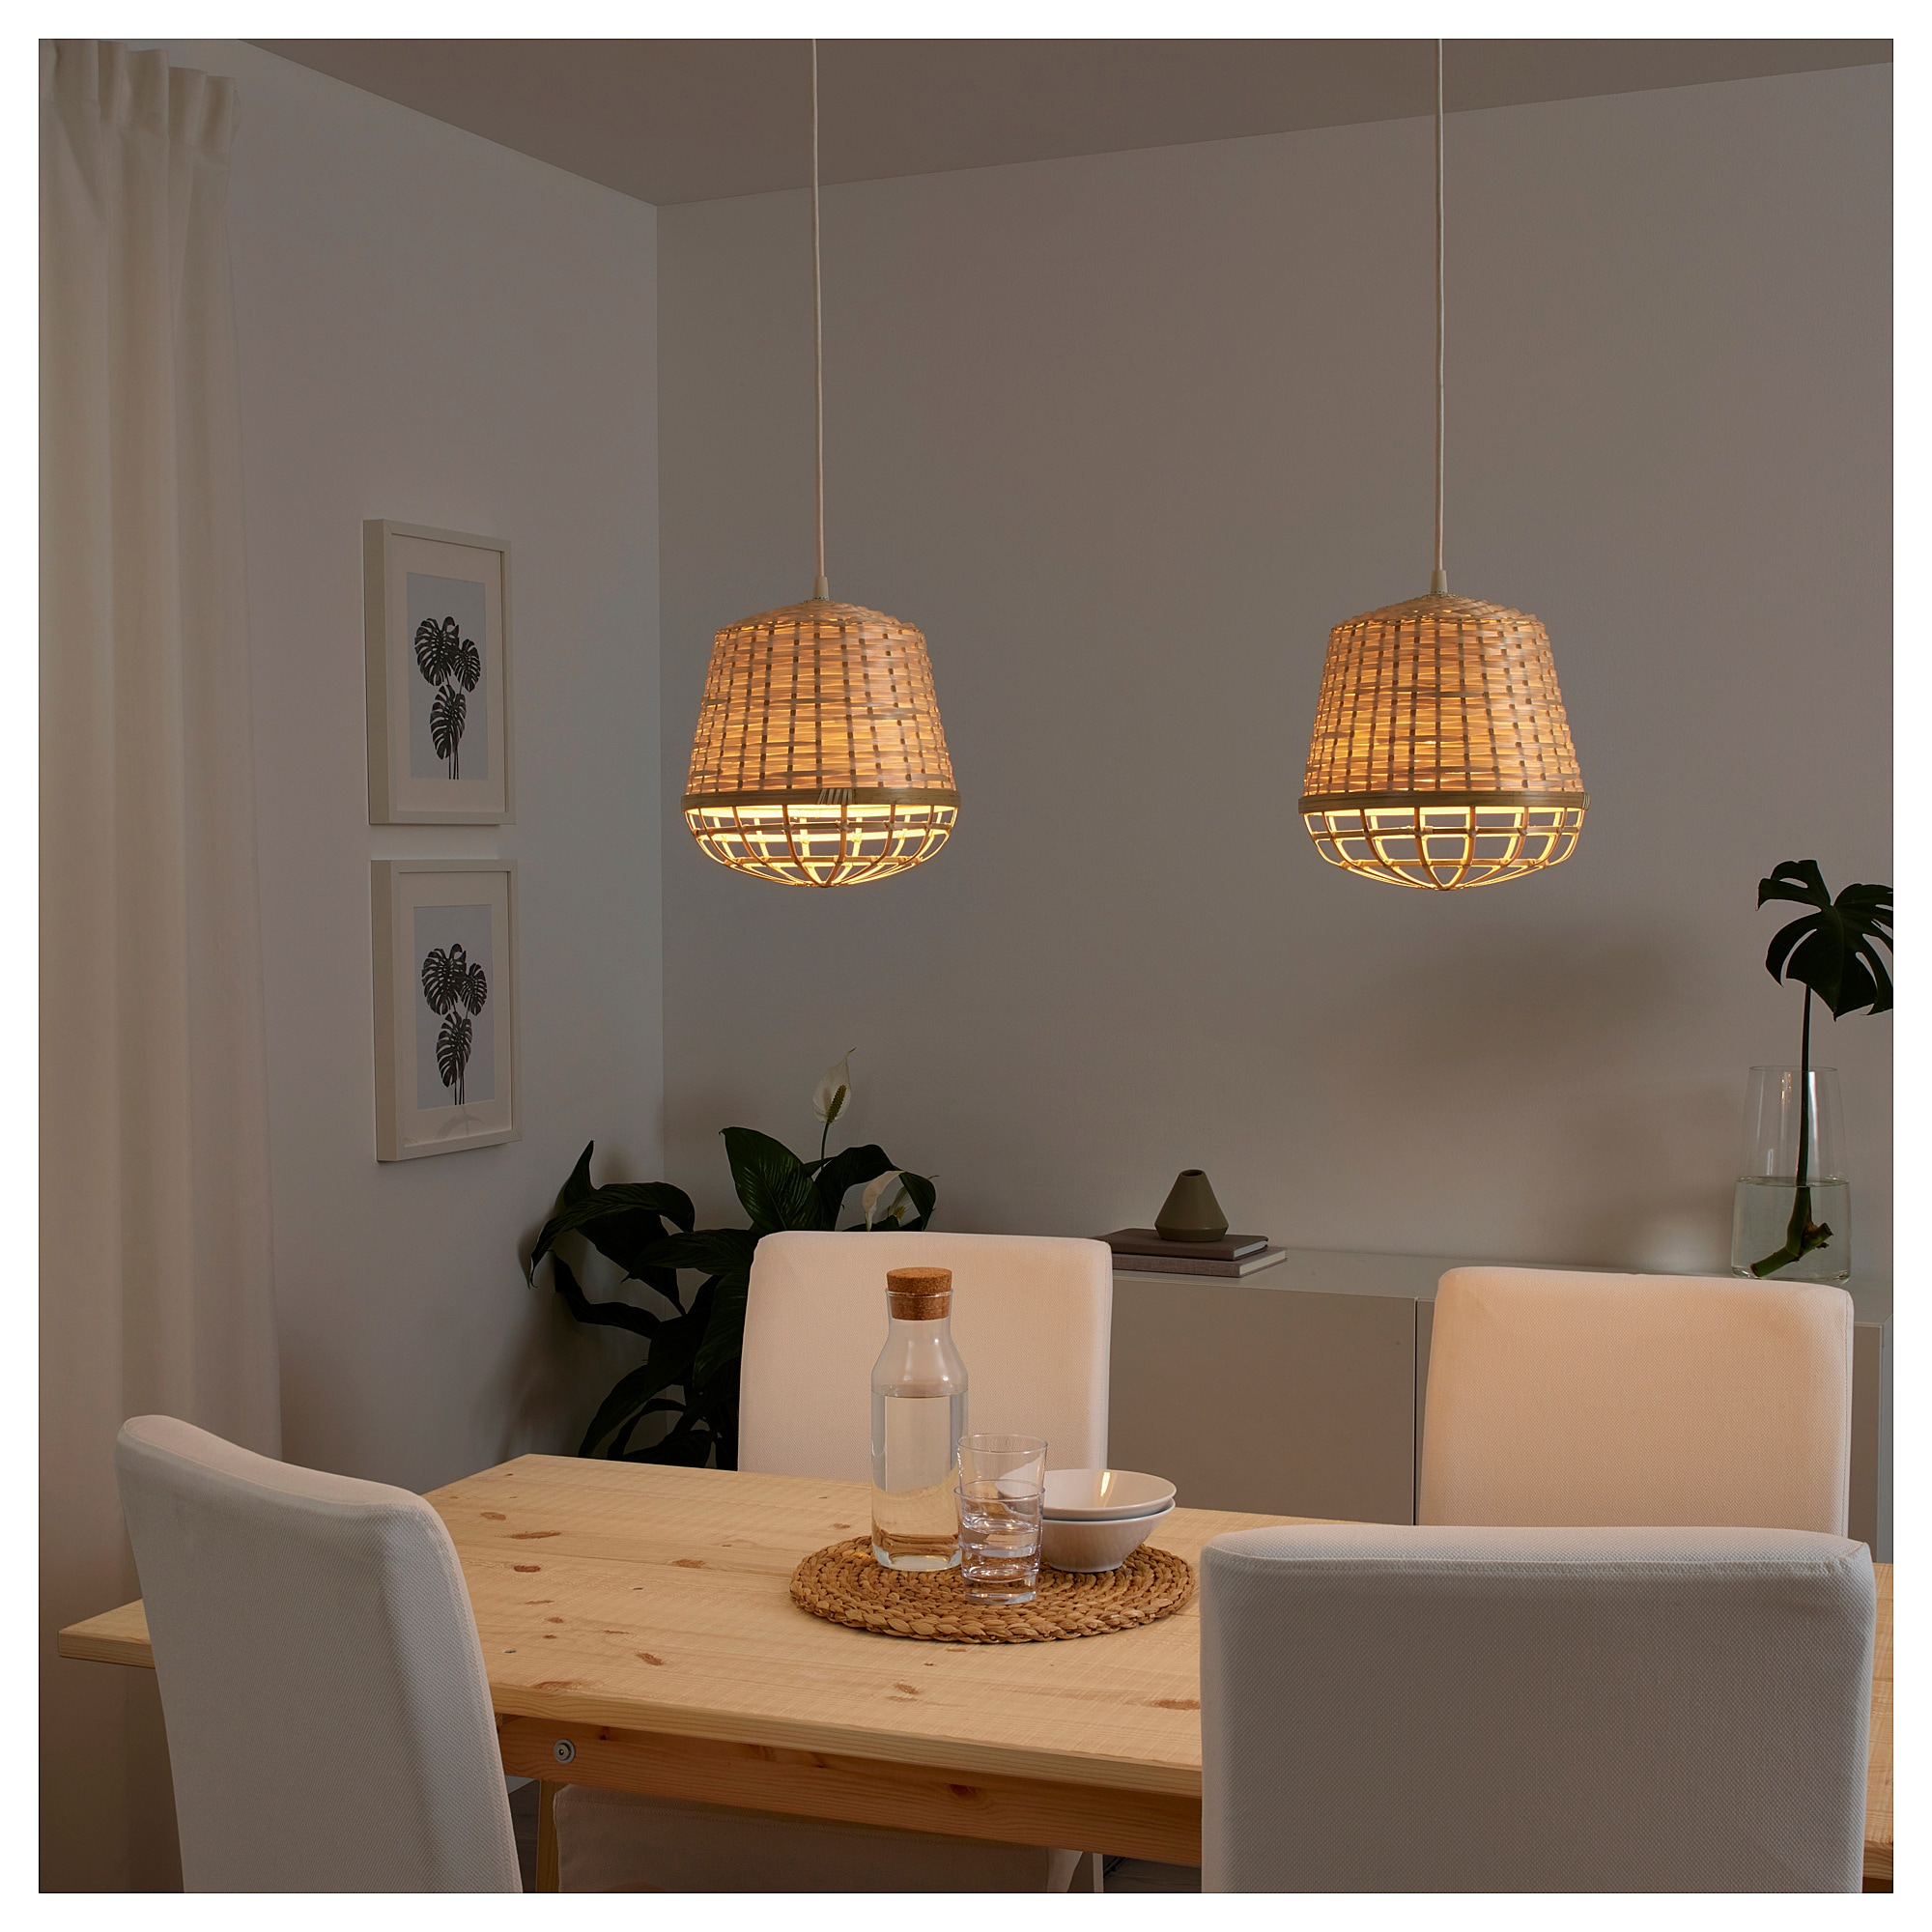 Bambou Industriell Suspension Bambou Industriell Bambou Suspension Bambou Industriell Suspension Bambou Industriell Suspension Industriell Suspension R4L5Aj